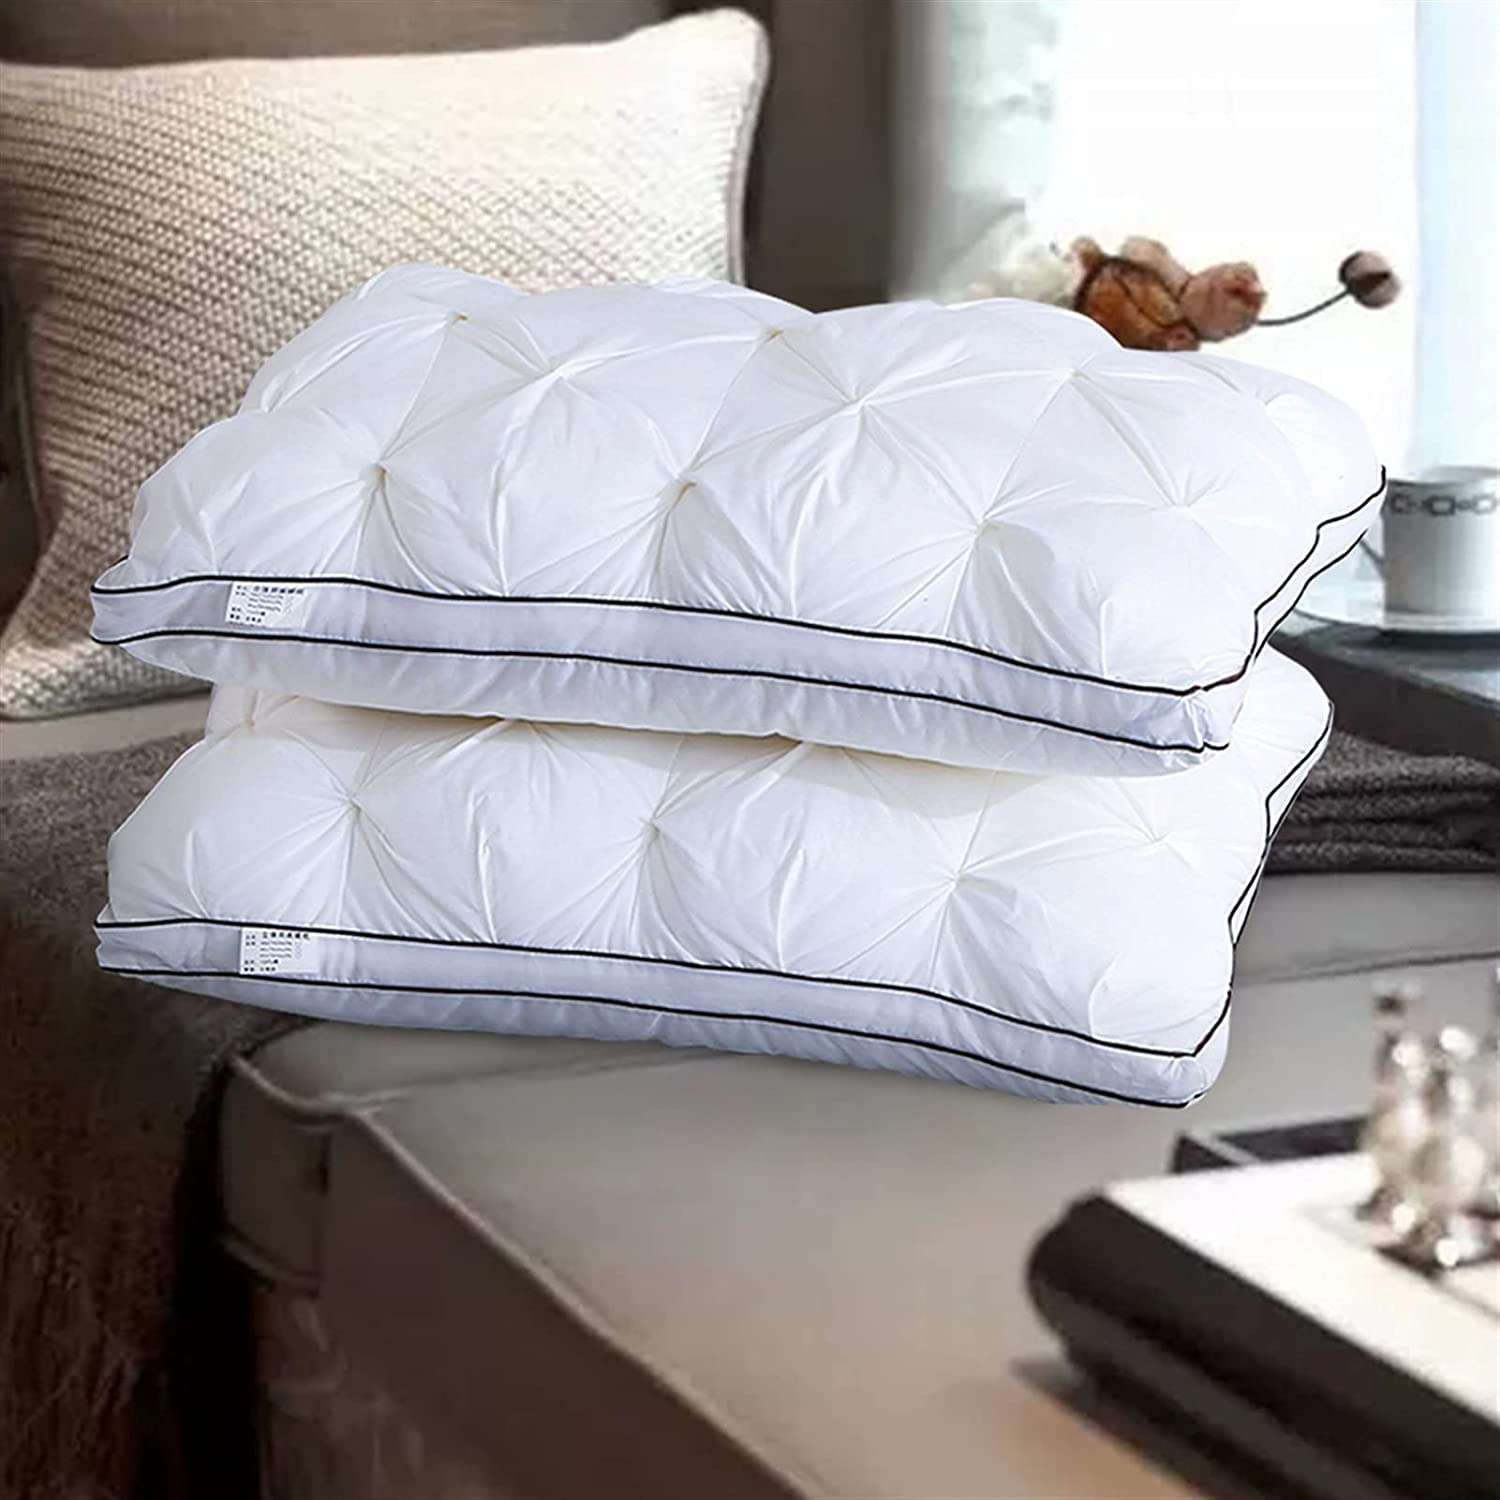 TIYKI 100% Max 40% OFF New product Cotton Sleeping Pillow Pillows Comfortable and f Soft